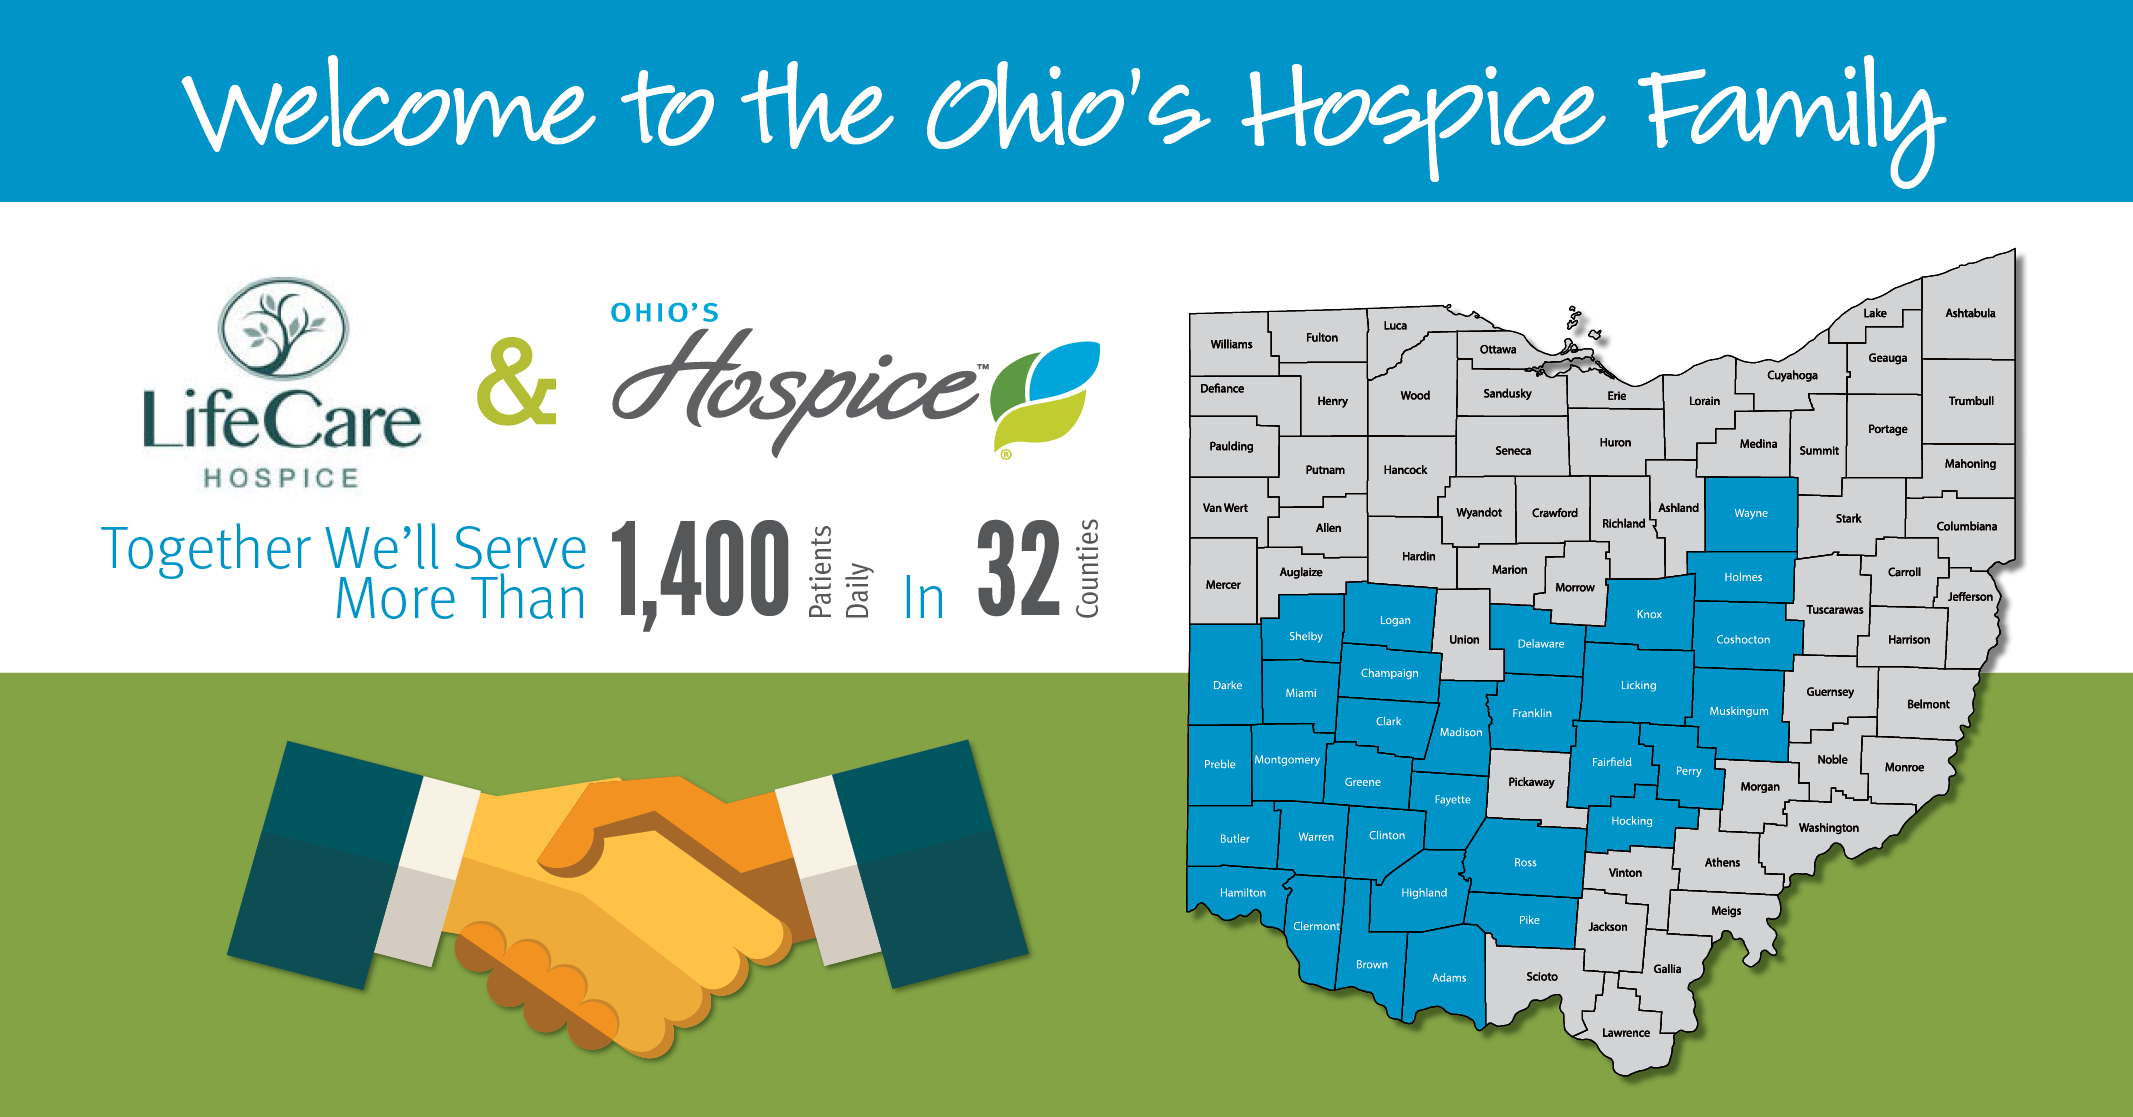 LifeCare Hospice Joins Ohio's Hospice Strategic Partnership